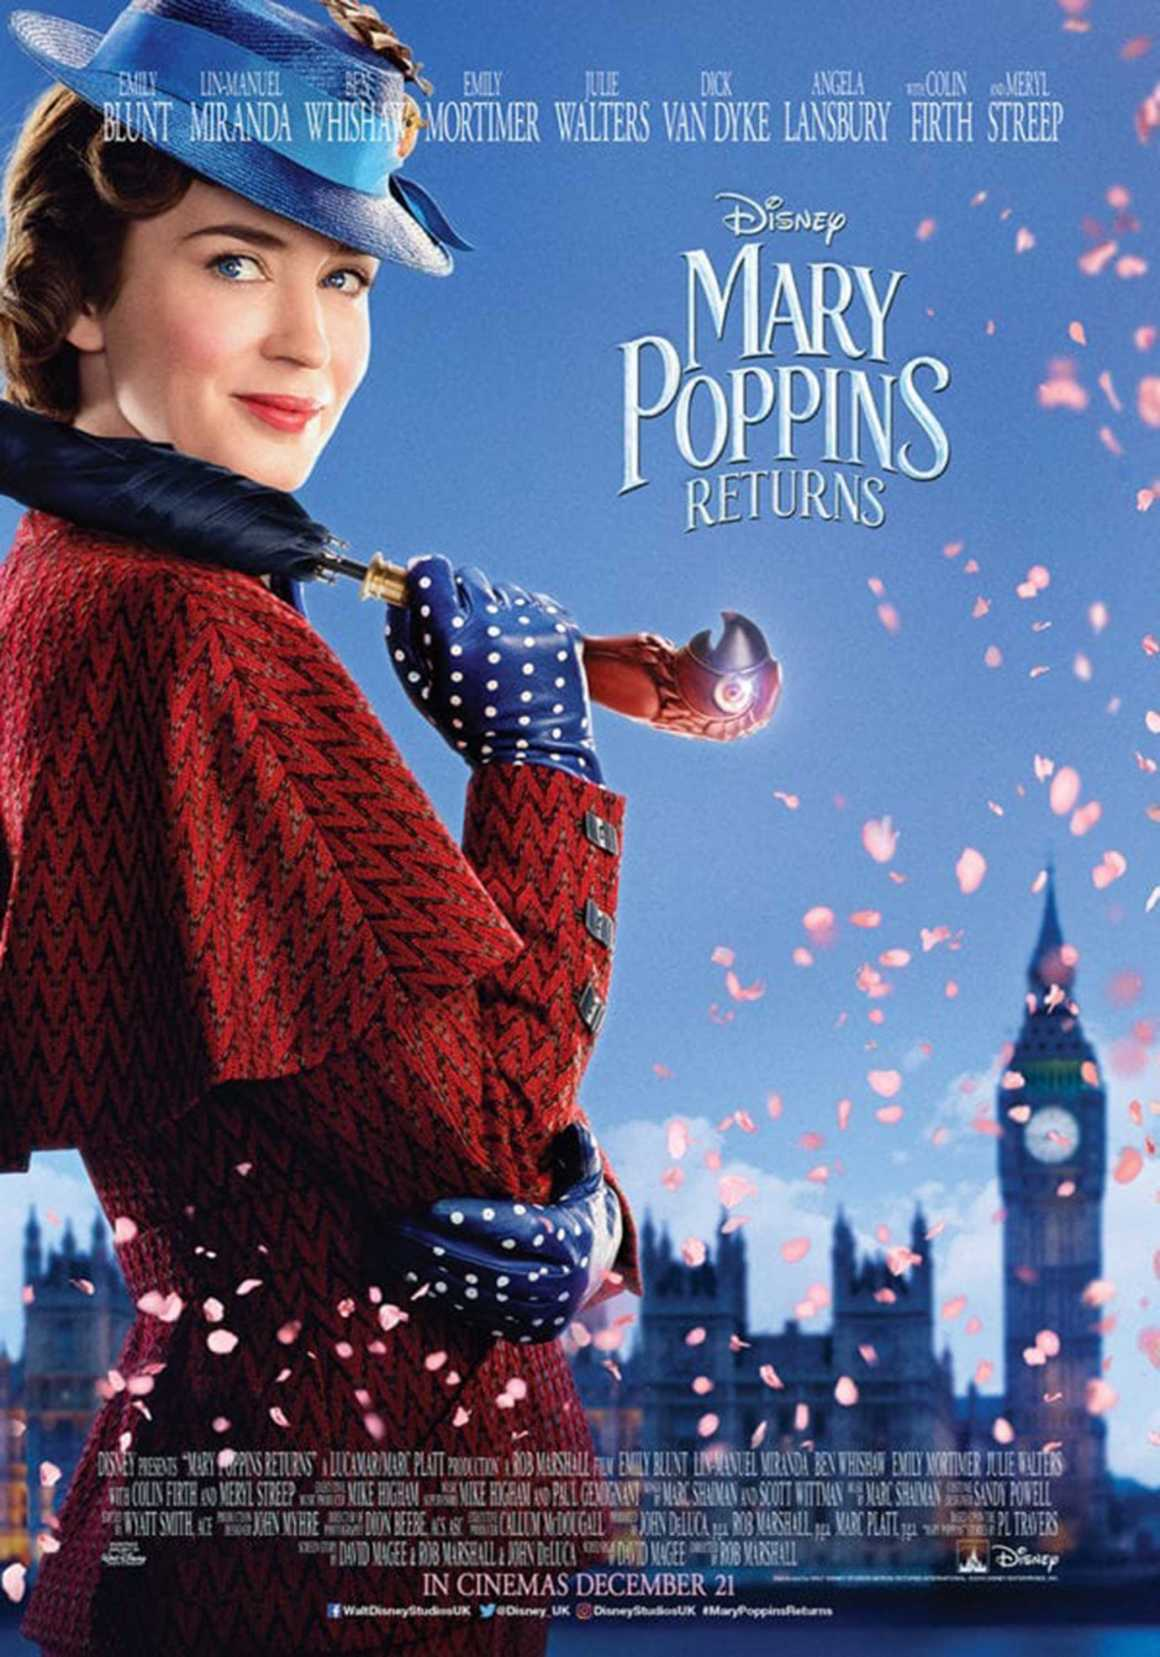 Movie review: 'Mary Poppins Returns,'Emily Blunt is delightful in sweet, nostalgic sequel